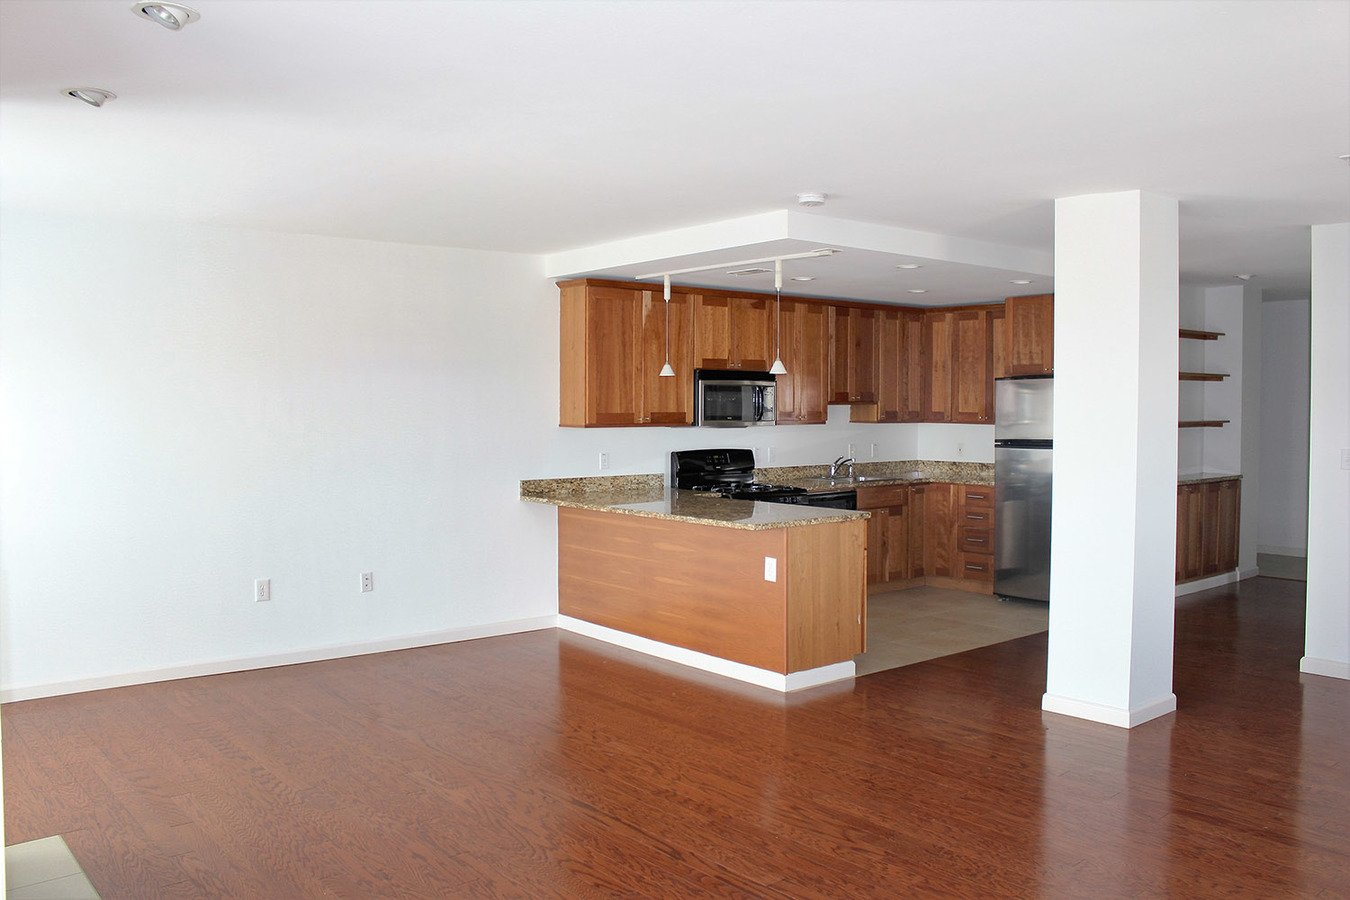 2 Bedrooms 2 Bathrooms Apartment for rent at Parc Frontenac in St Louis, MO